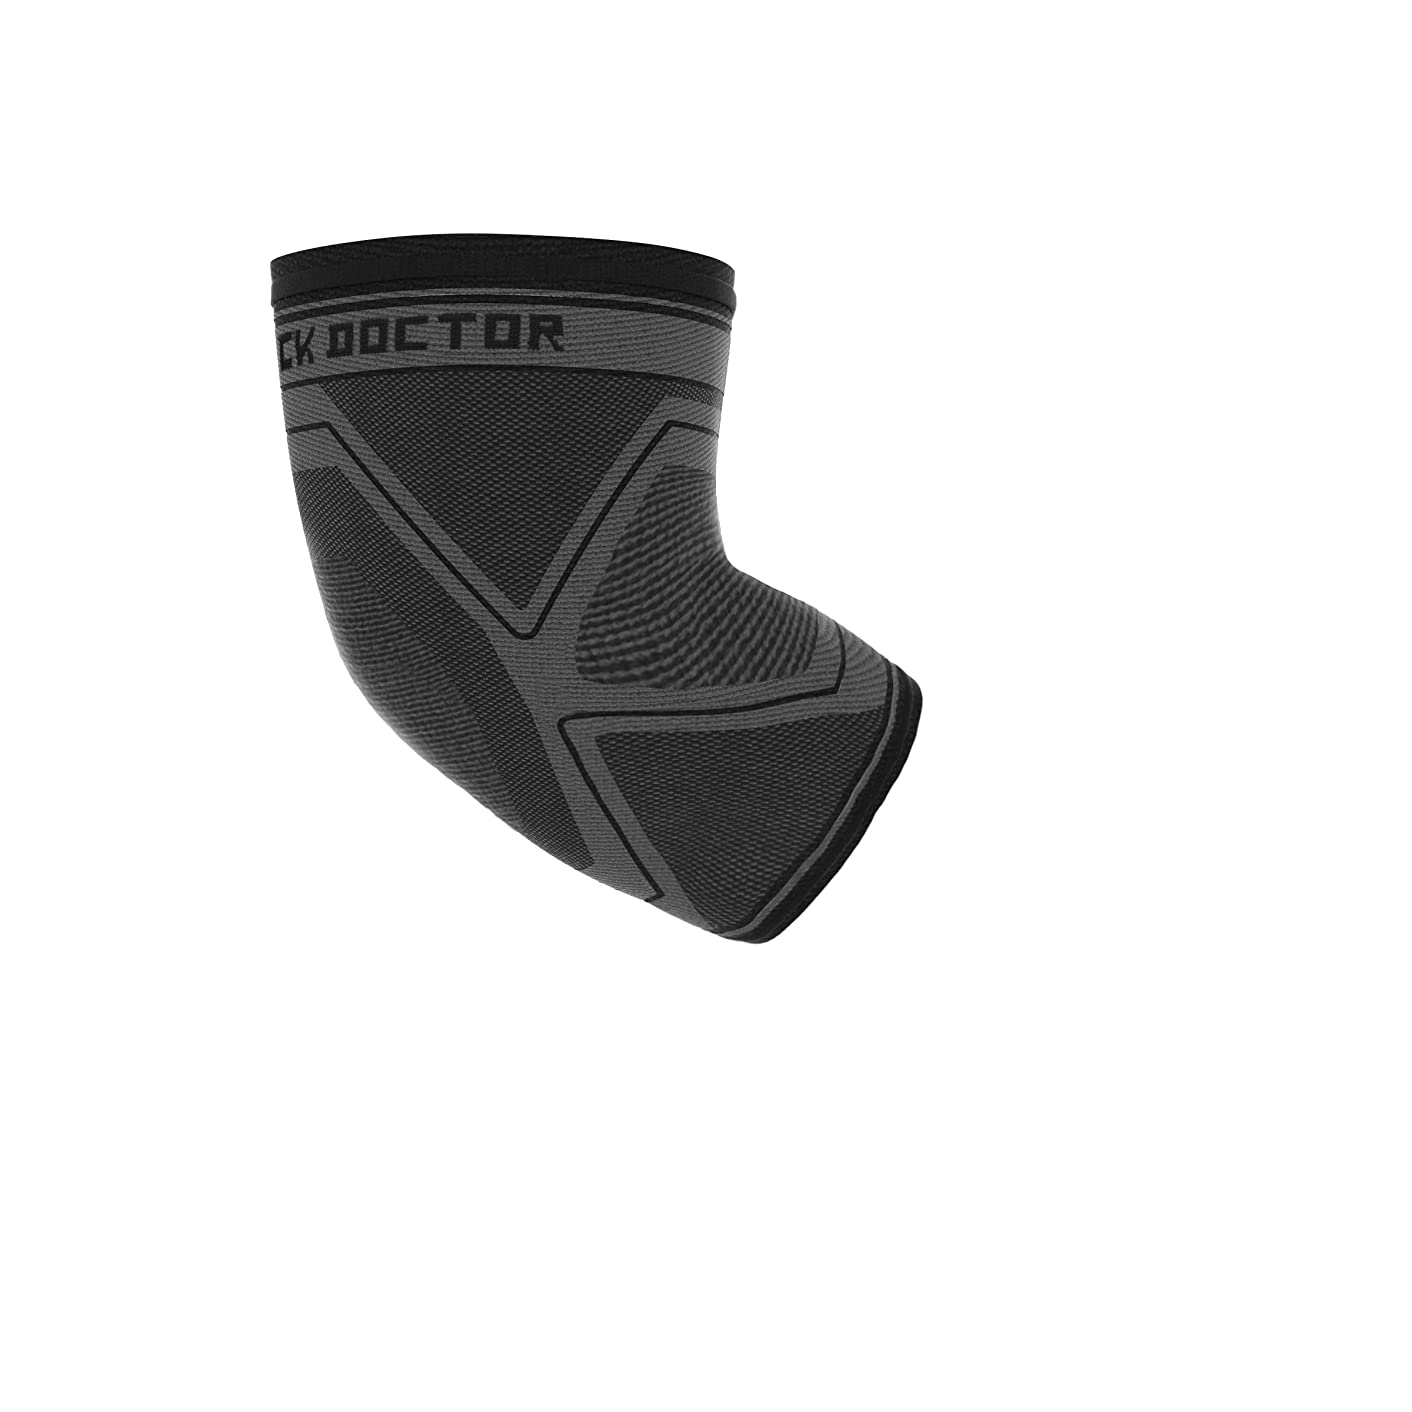 Shock Doctor Elbow Sleeve Brace Compression for Recovery, Tendonitis, Golfer Elbow, Tennis, Arthritis, Joint Pain Relief, Injury. For Men and Women, Left or Right. Grey/Black